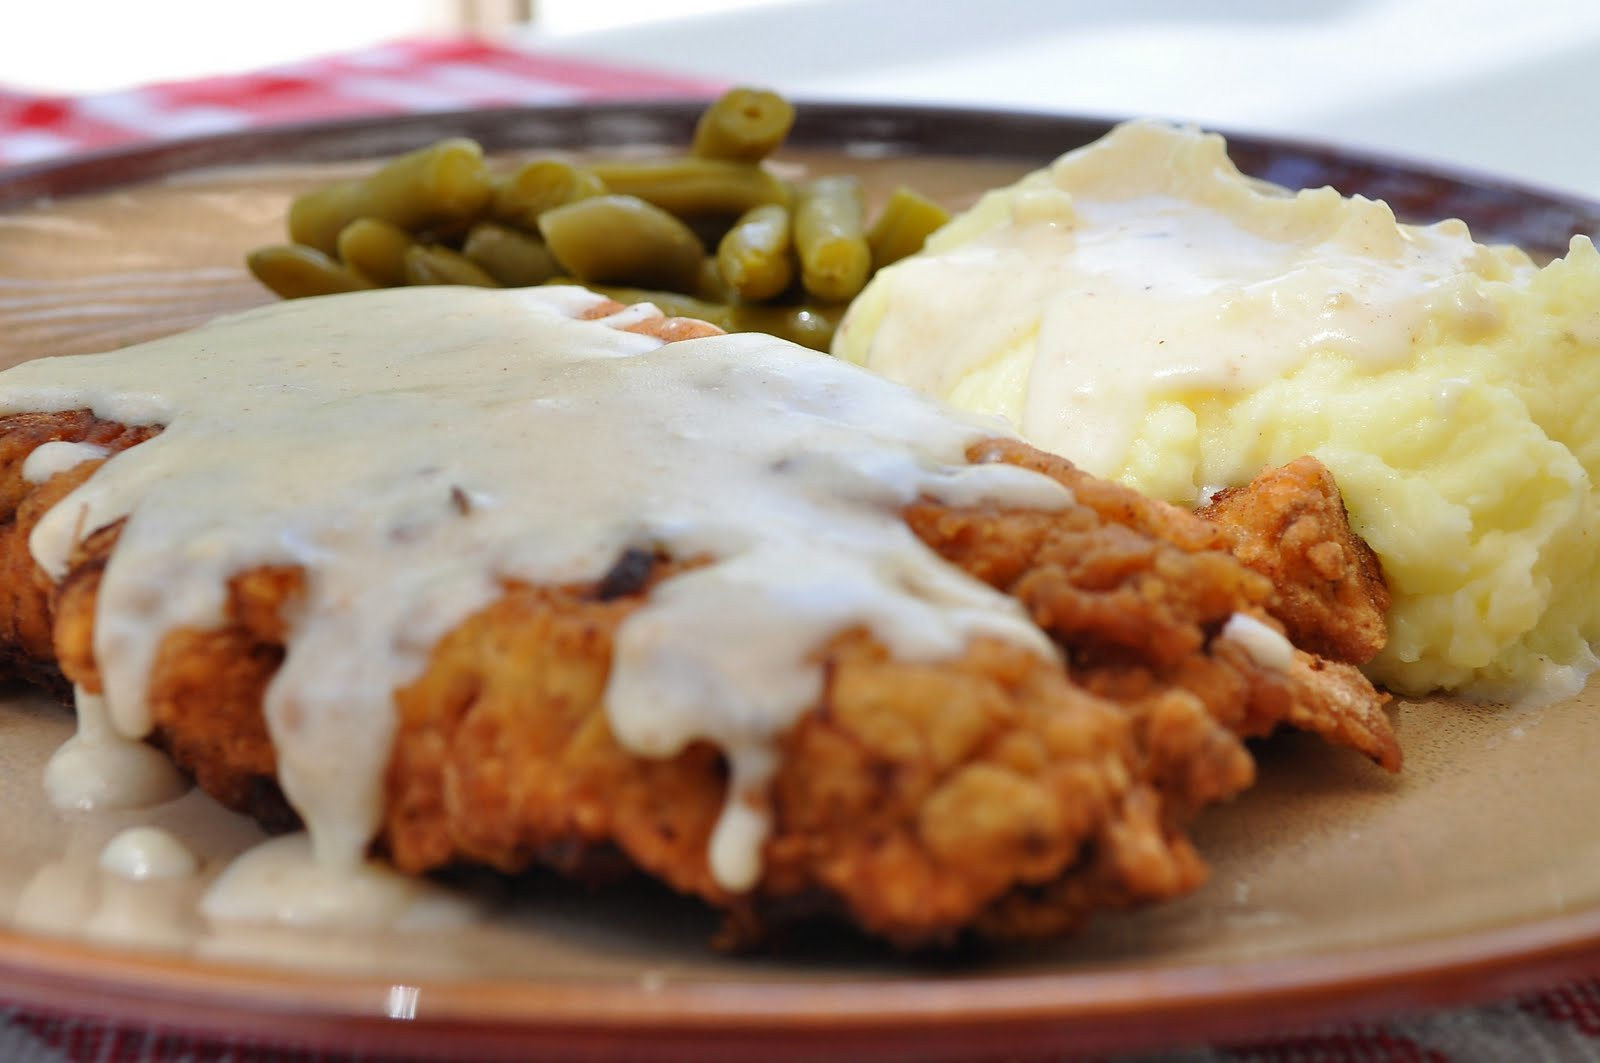 Freeing My Martha: Chicken Fried Steak With Country Gravy